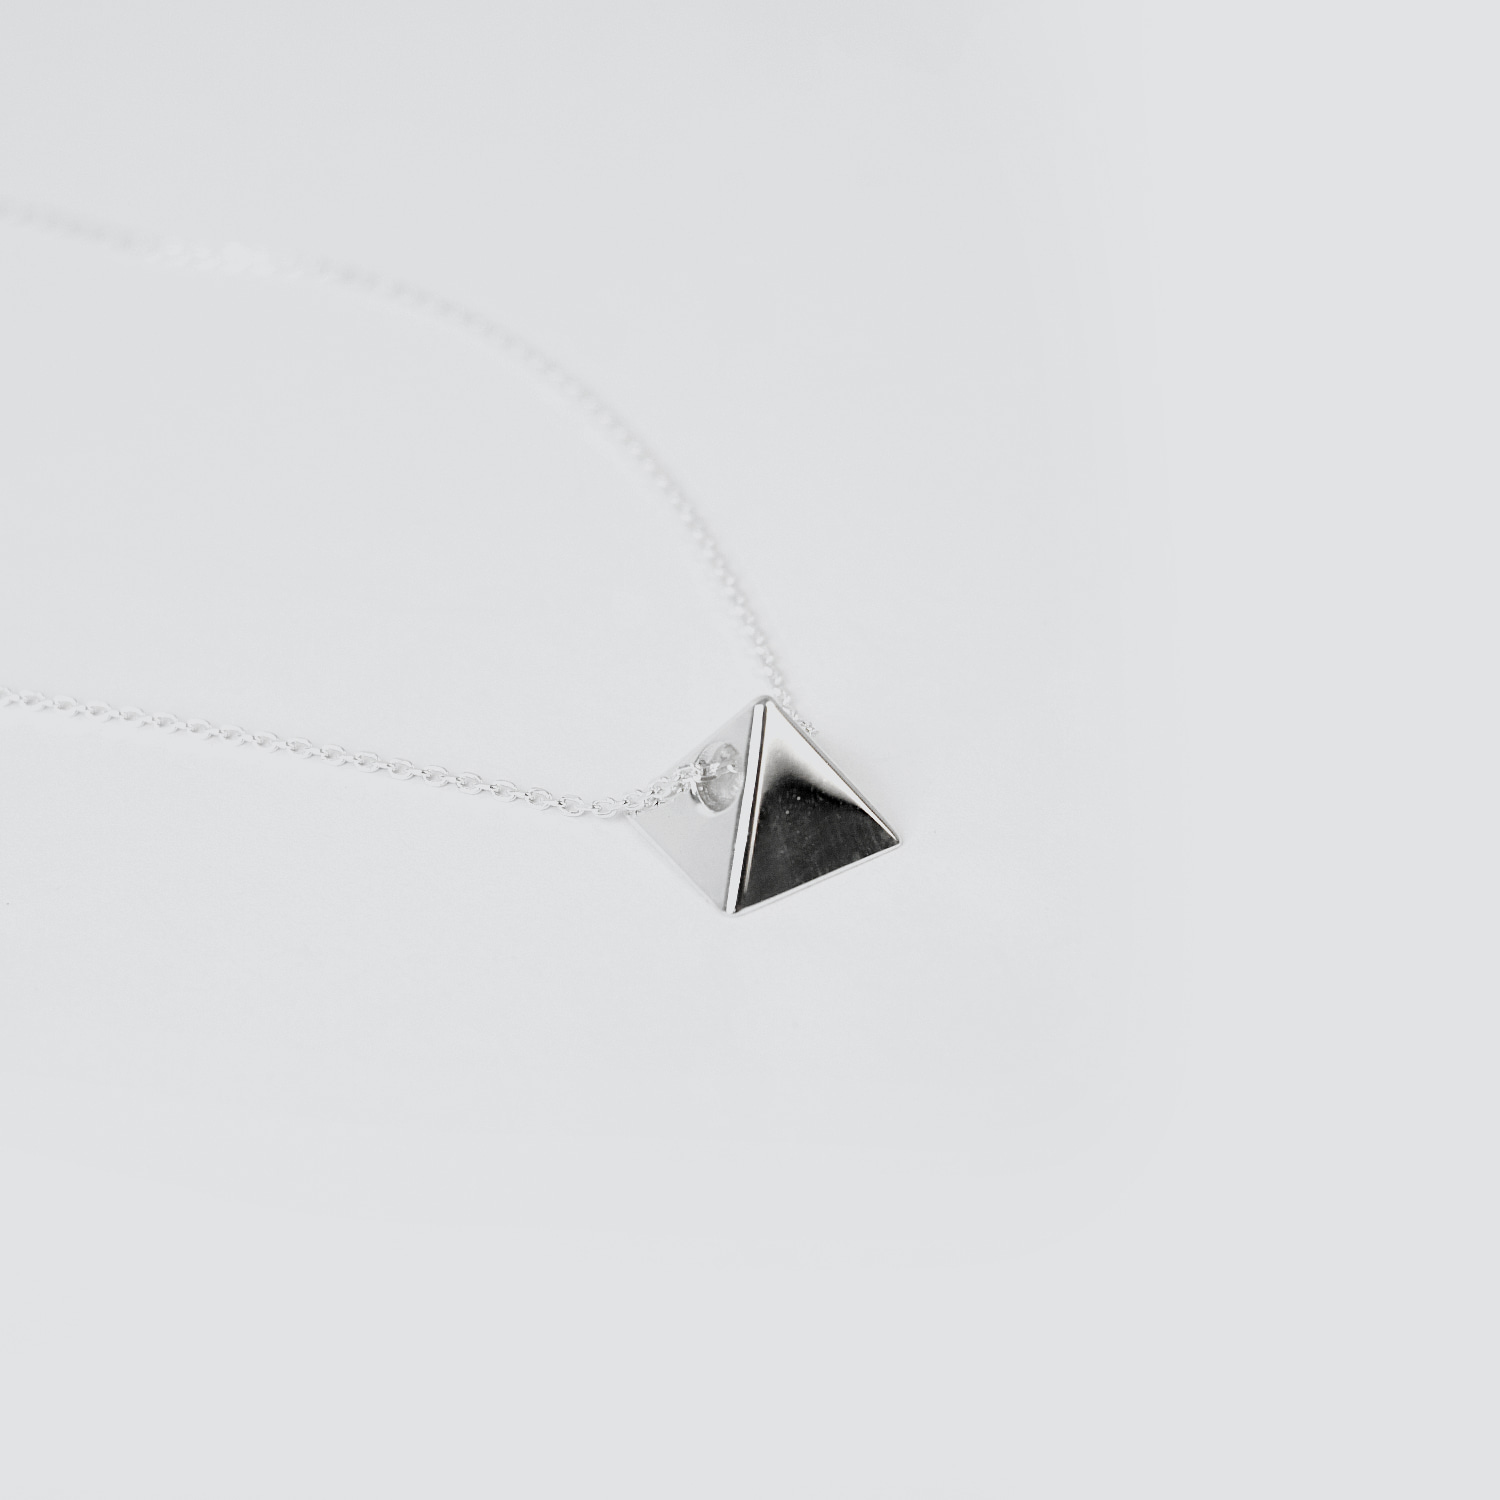 BLINDREASON The Dark Side Of The Moon Necklace (BRENT1637)